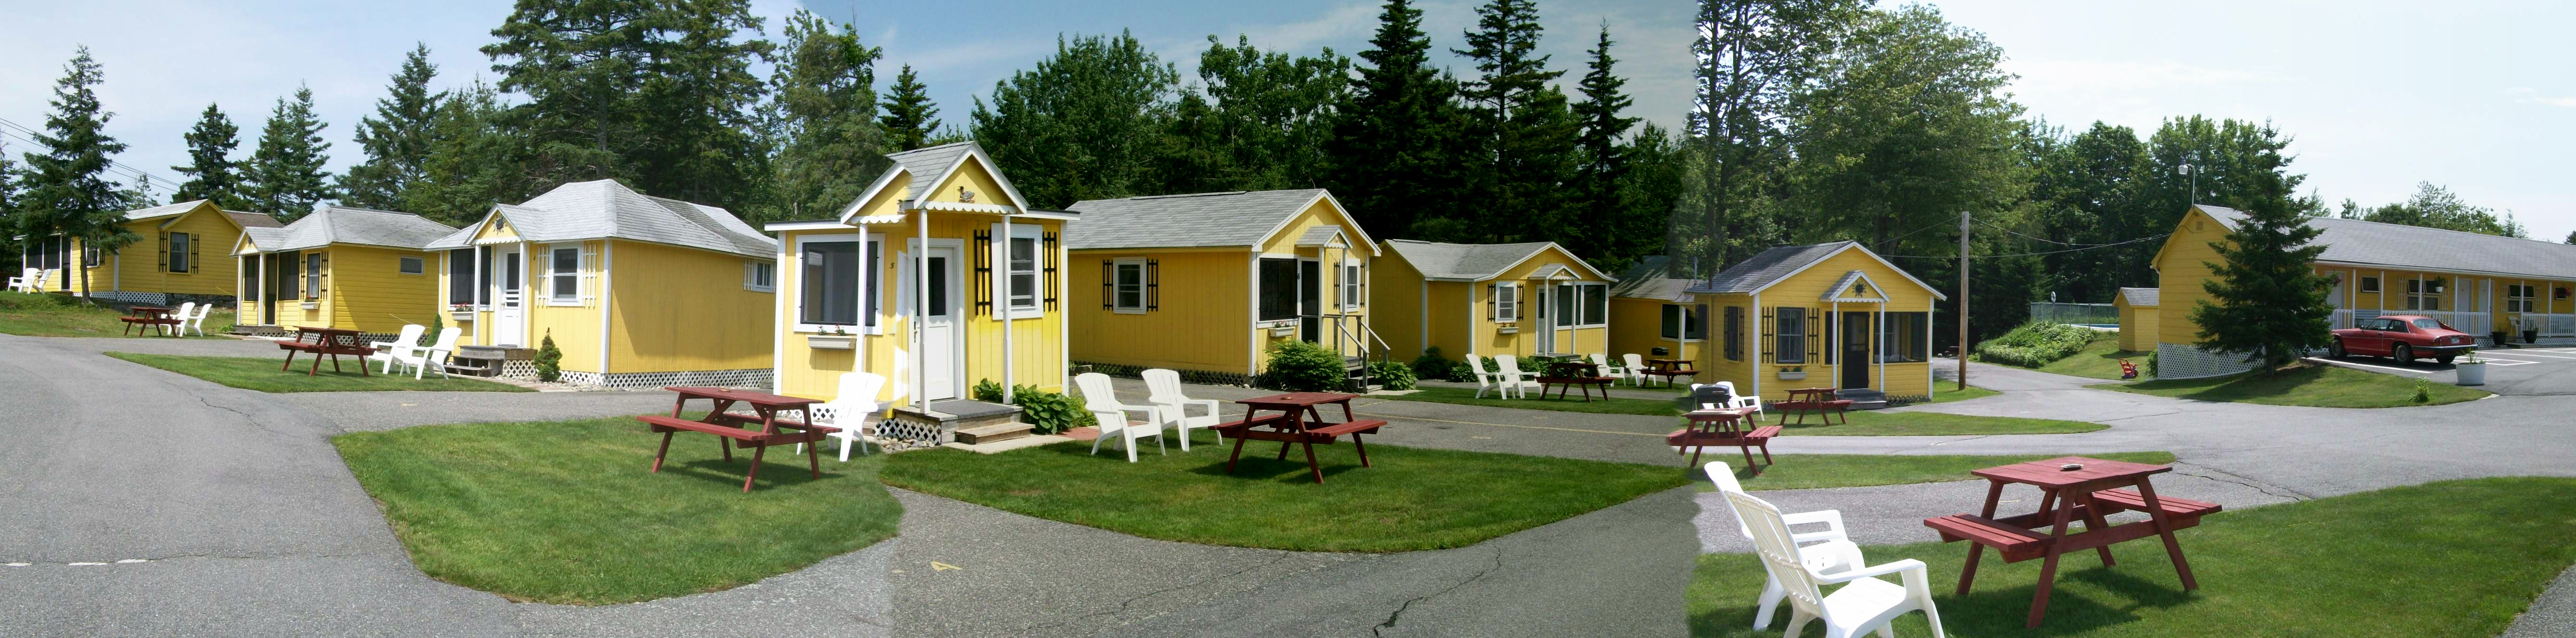 Bar harbor maine cottages motel vacation reservations for Cottage builders near me